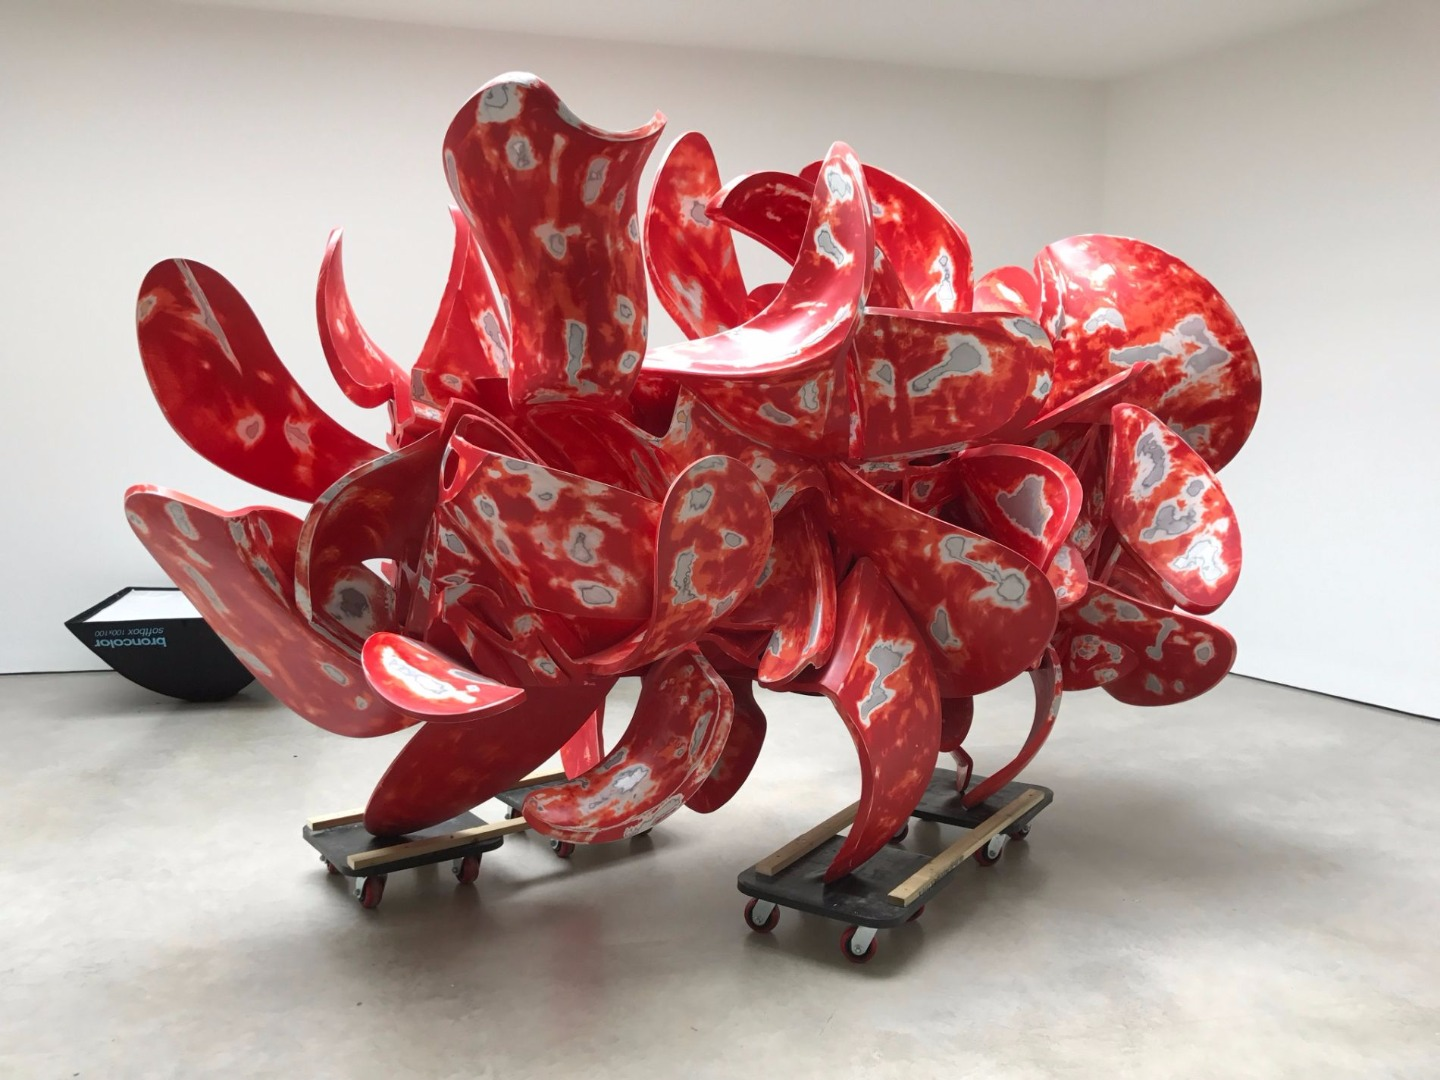 Tony Cragg at Lisson Gallery, London